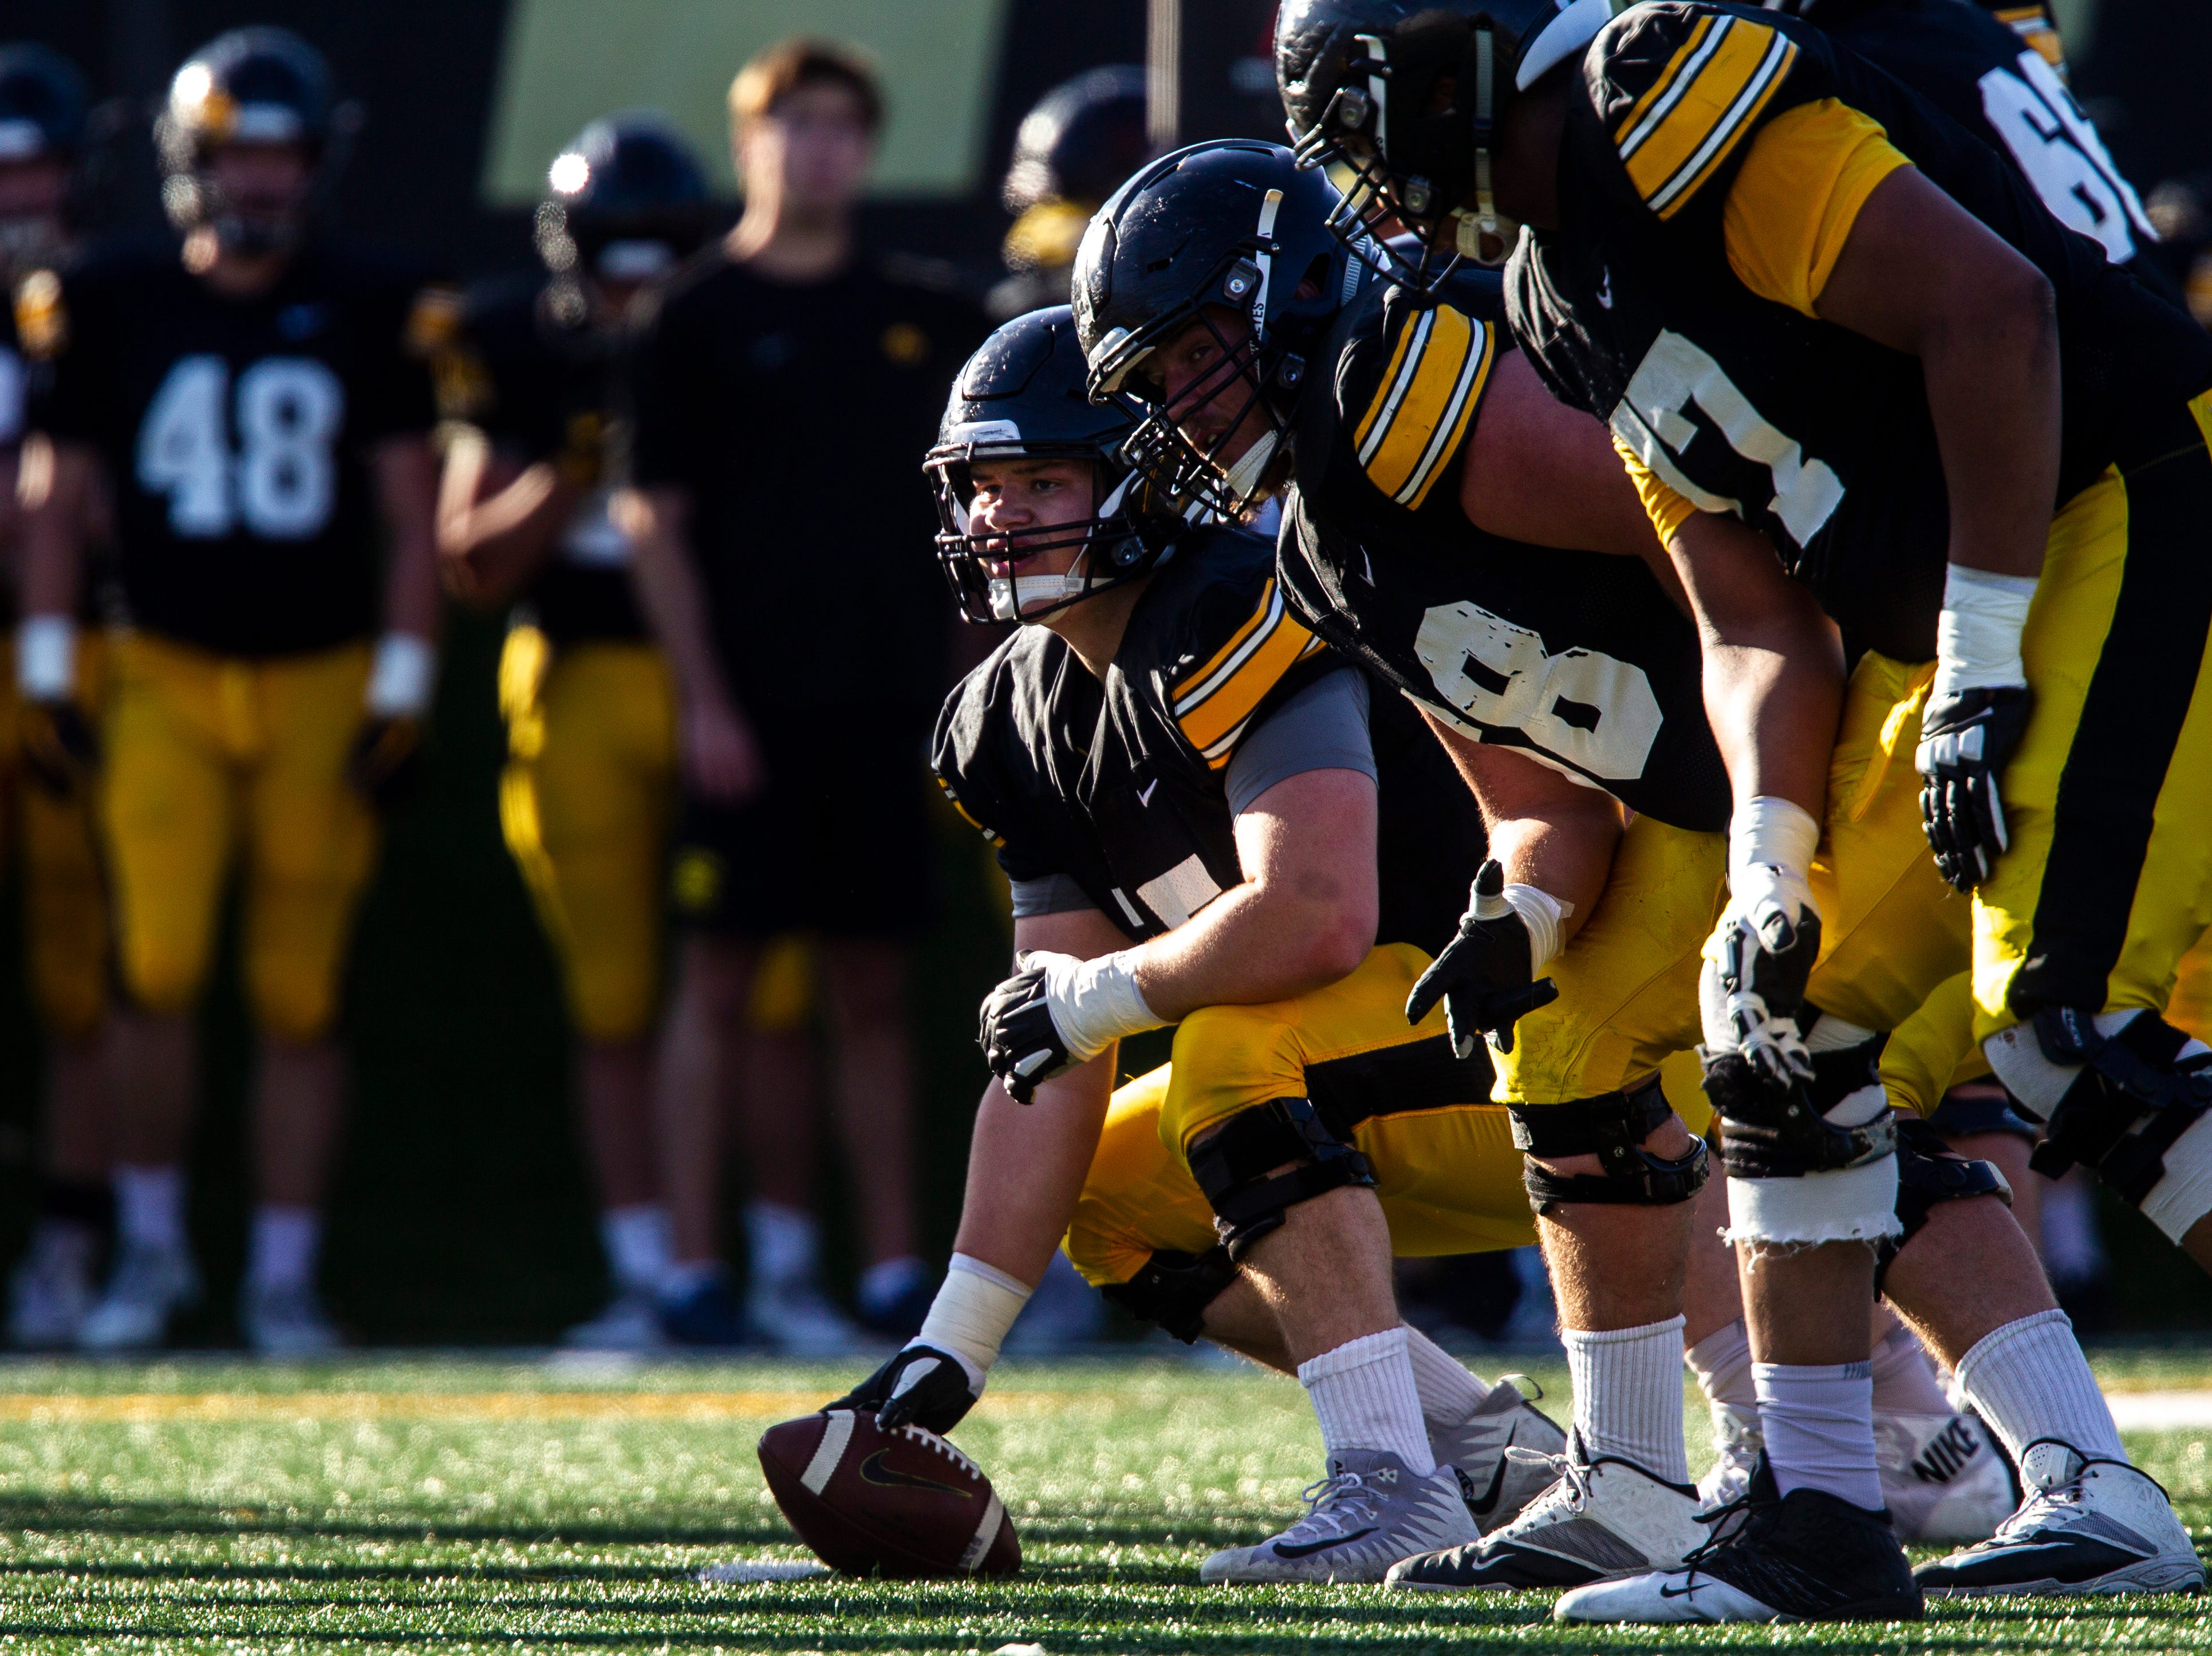 Iowa center Tyler Linderbaum (65) gets ready to snap the ball as offensive linemen Landan Paulsen and Alaric Jackson get set during the final spring football practice, Friday, April 26, 2019, at the University of Iowa outdoor practice facility in Iowa City, Iowa.